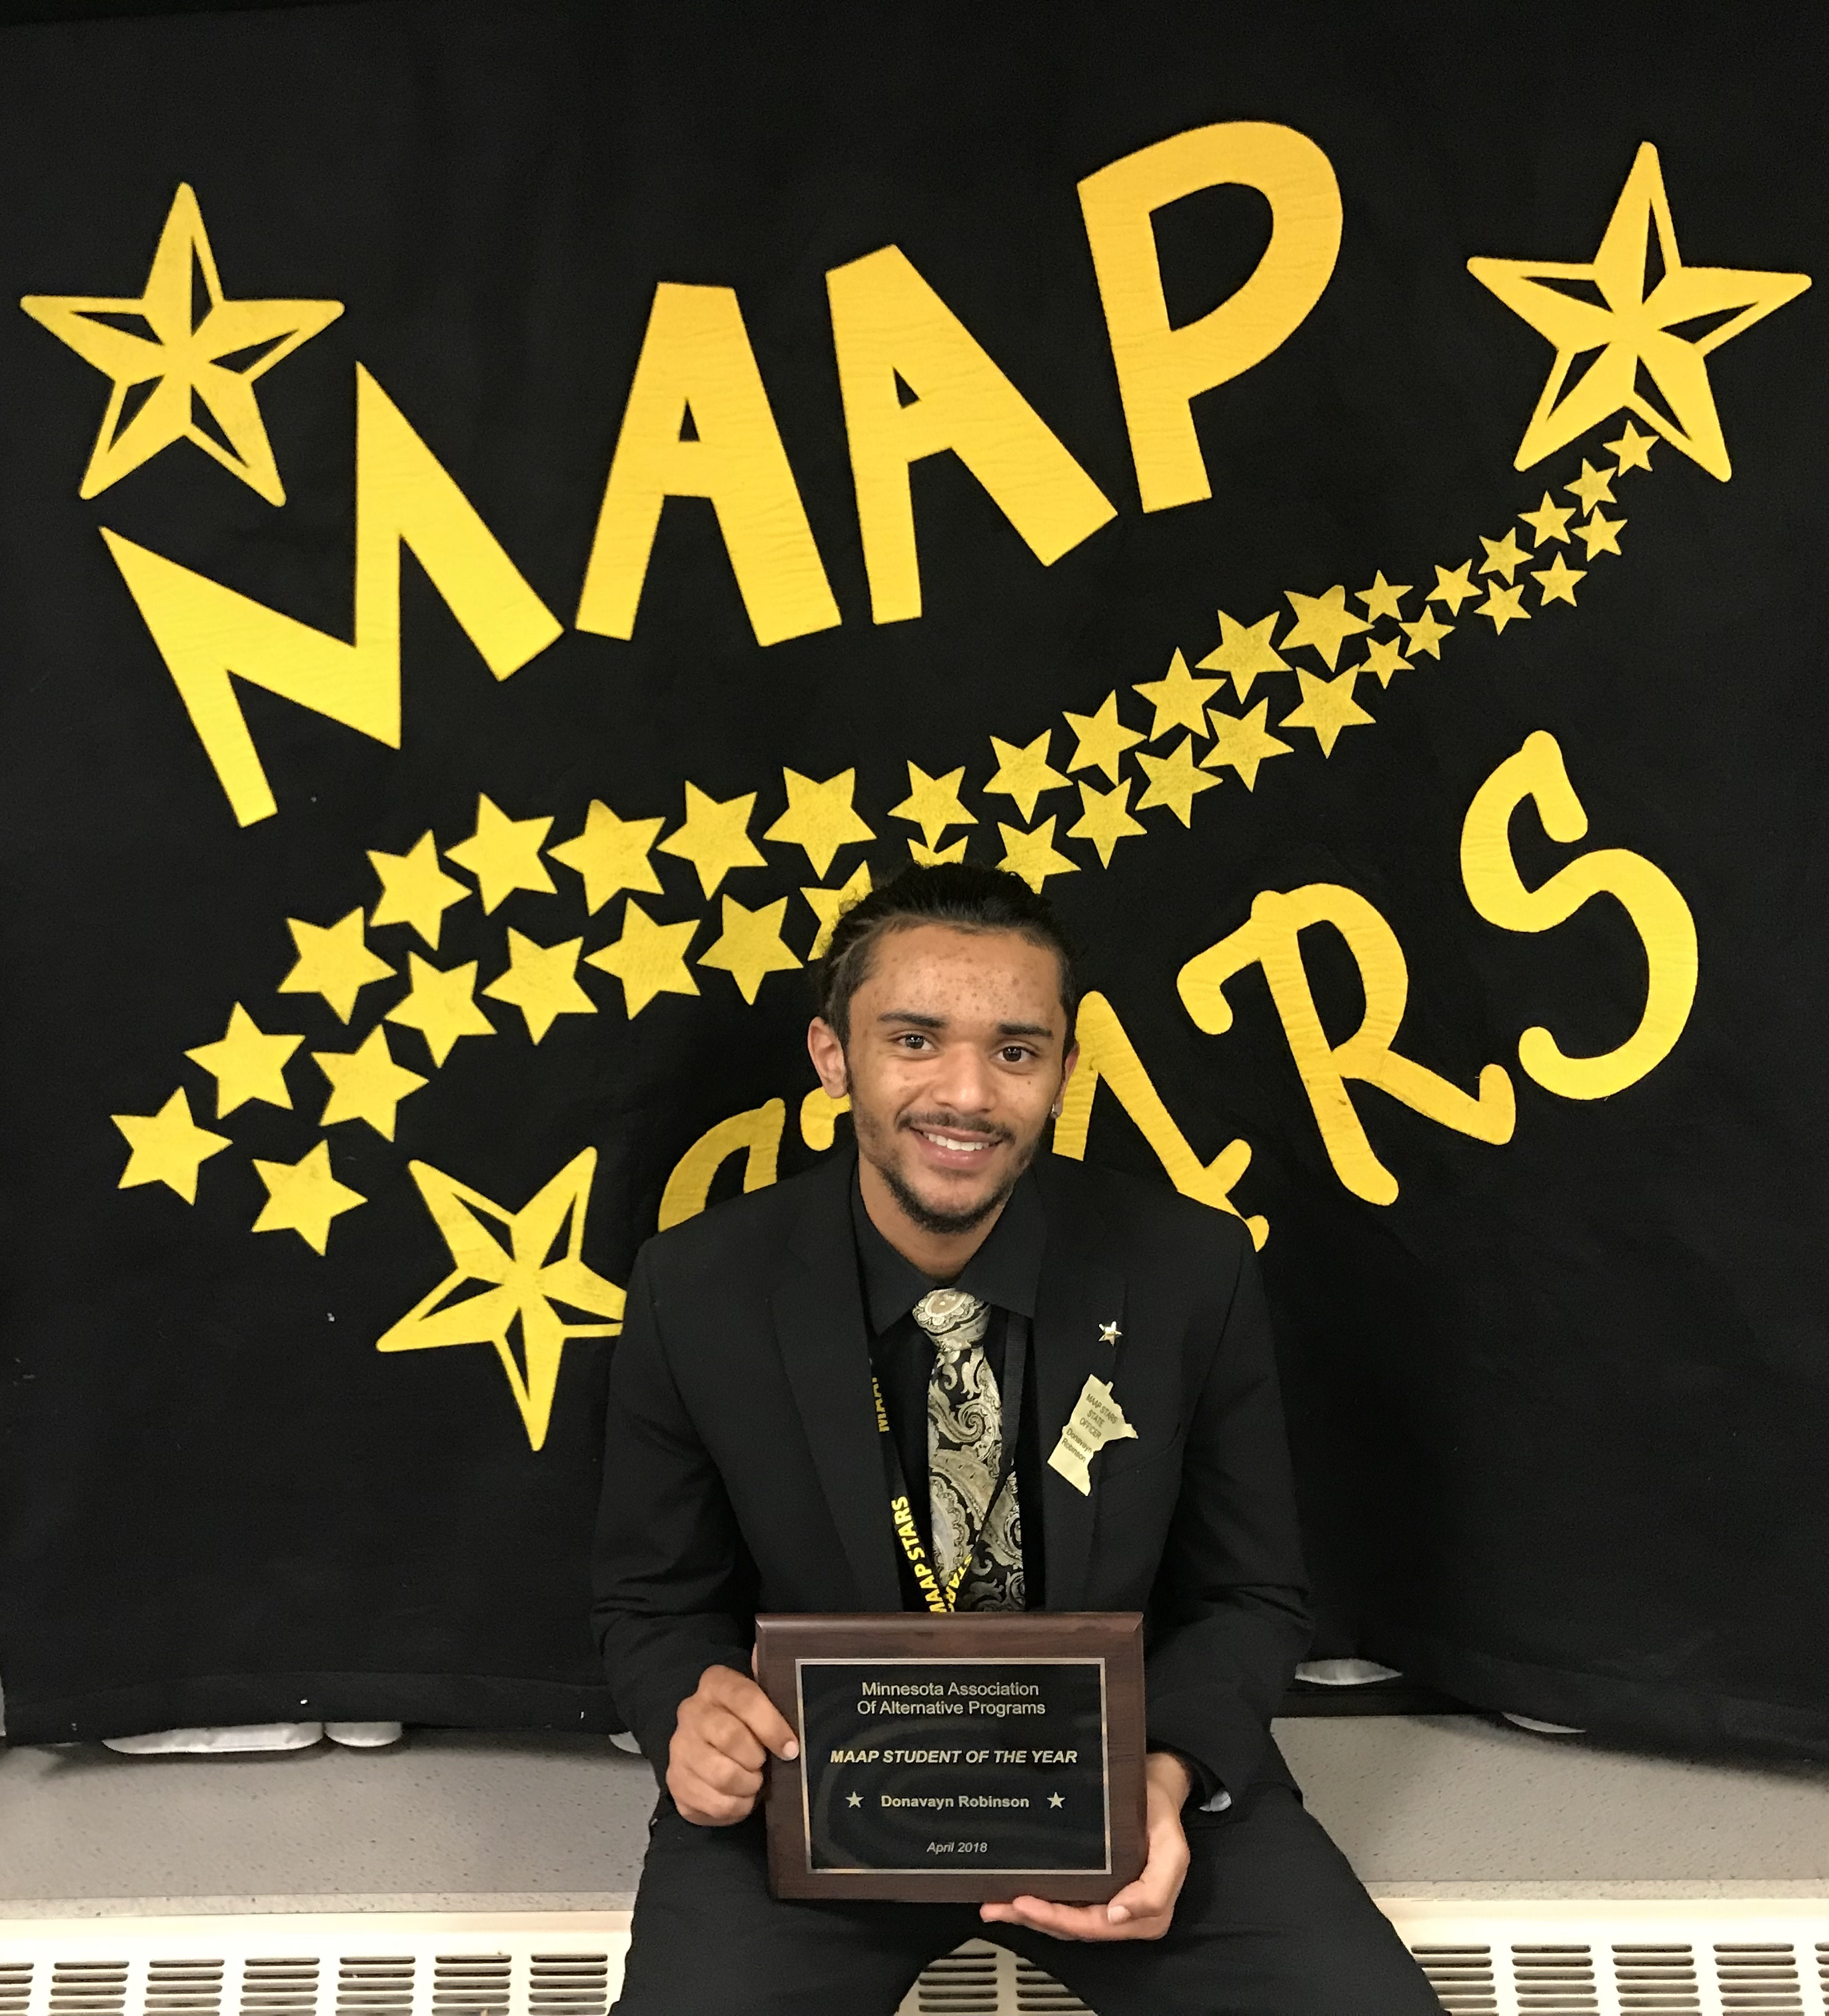 Donavayn Robinson - MAAP Student of the Year